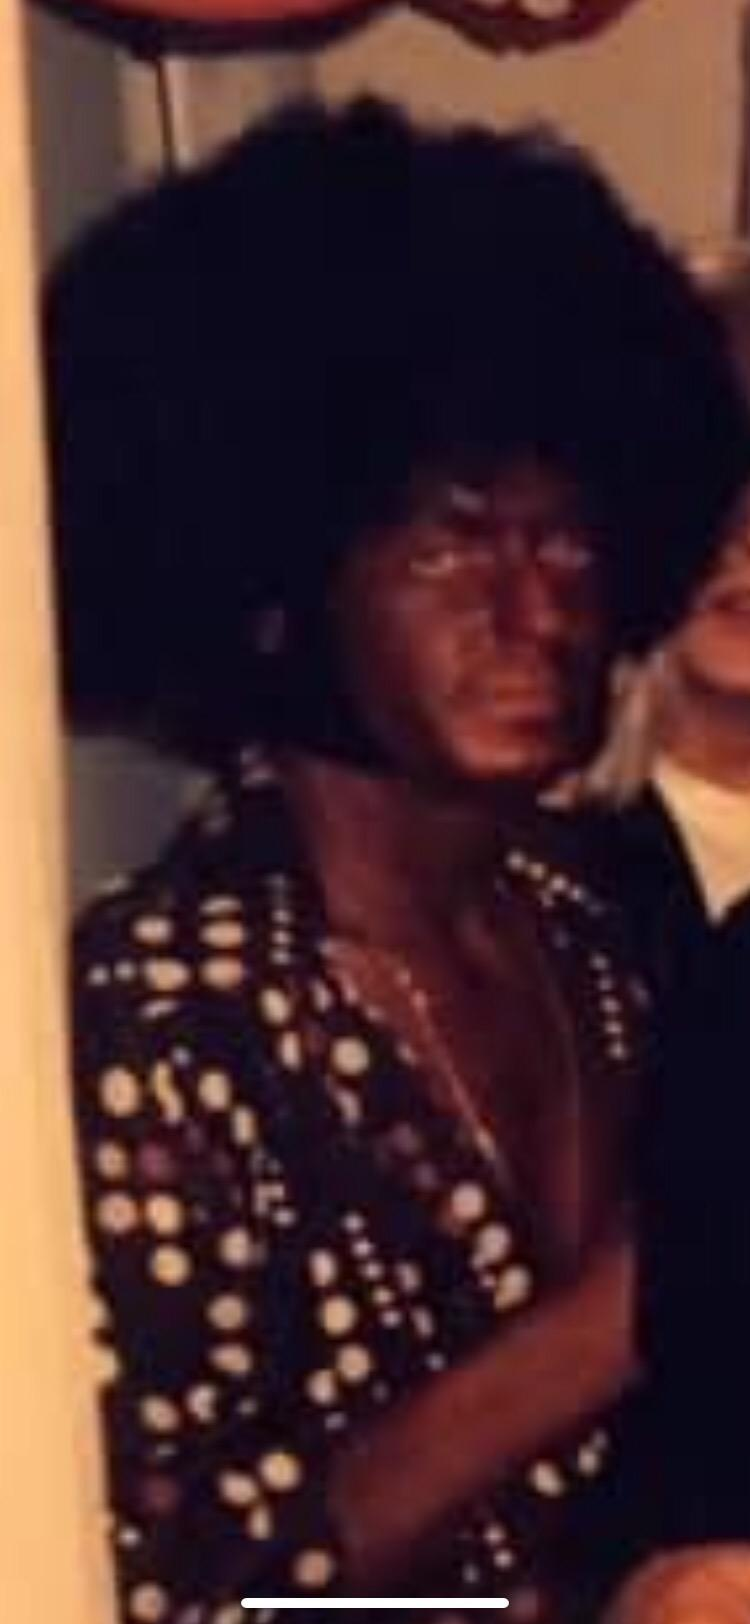 Block Island official in Blackface